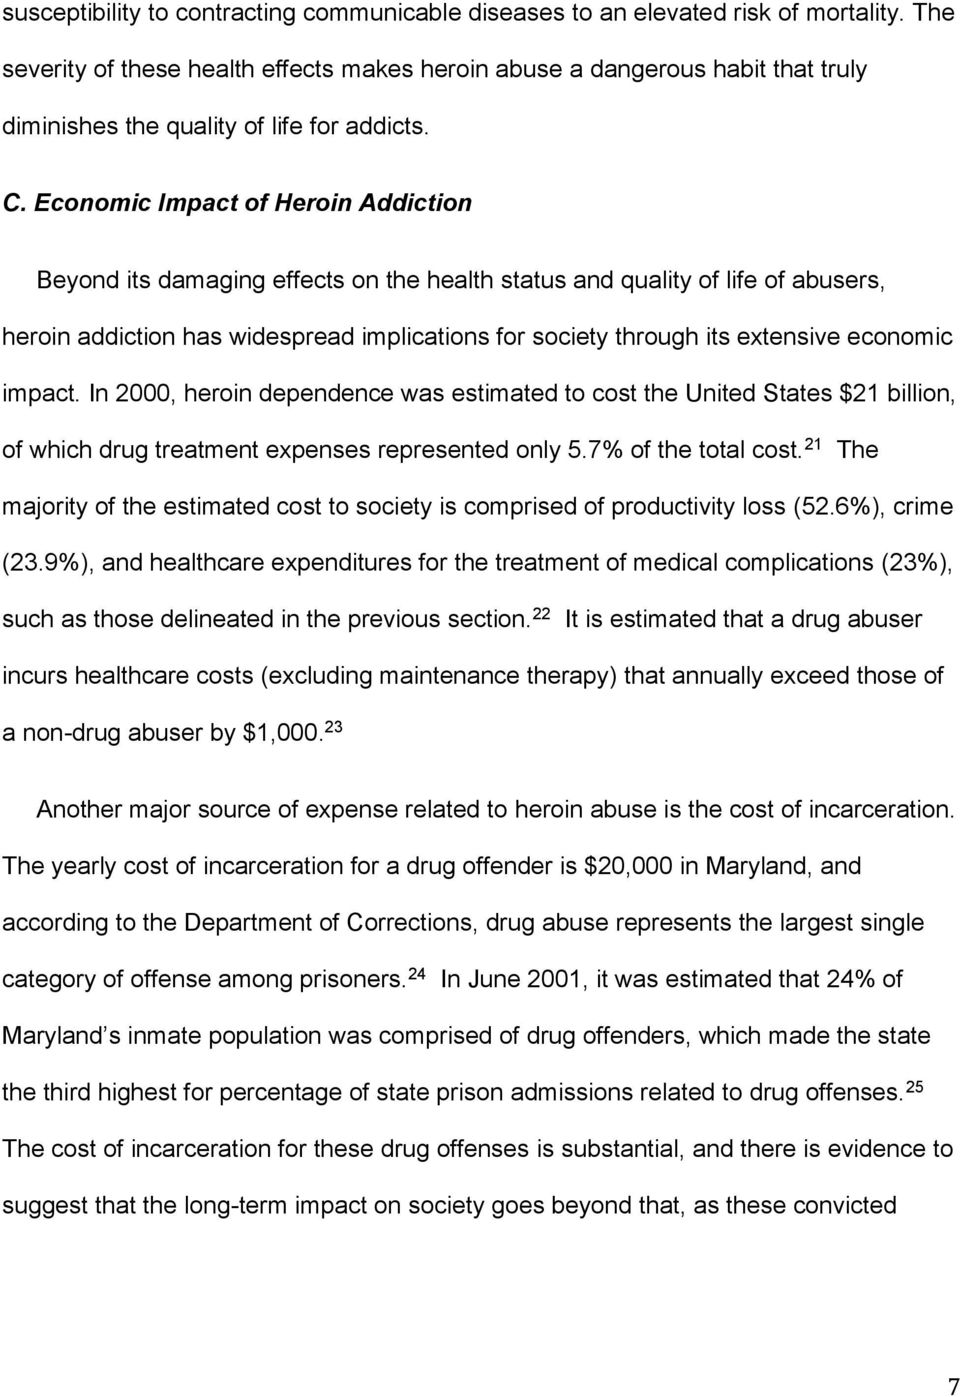 Economic Impact of Heroin Addiction Beyond its damaging effects on the health status and quality of life of abusers, heroin addiction has widespread implications for society through its extensive